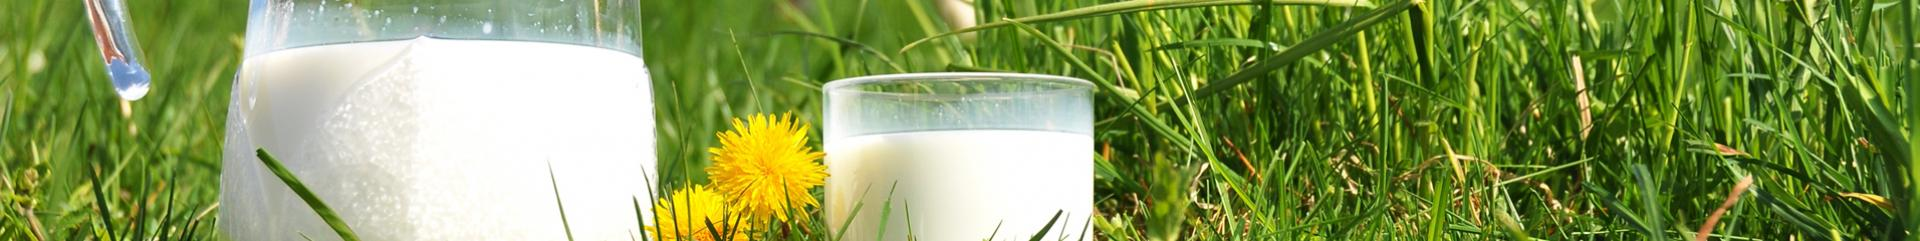 Wholesale milk dairy